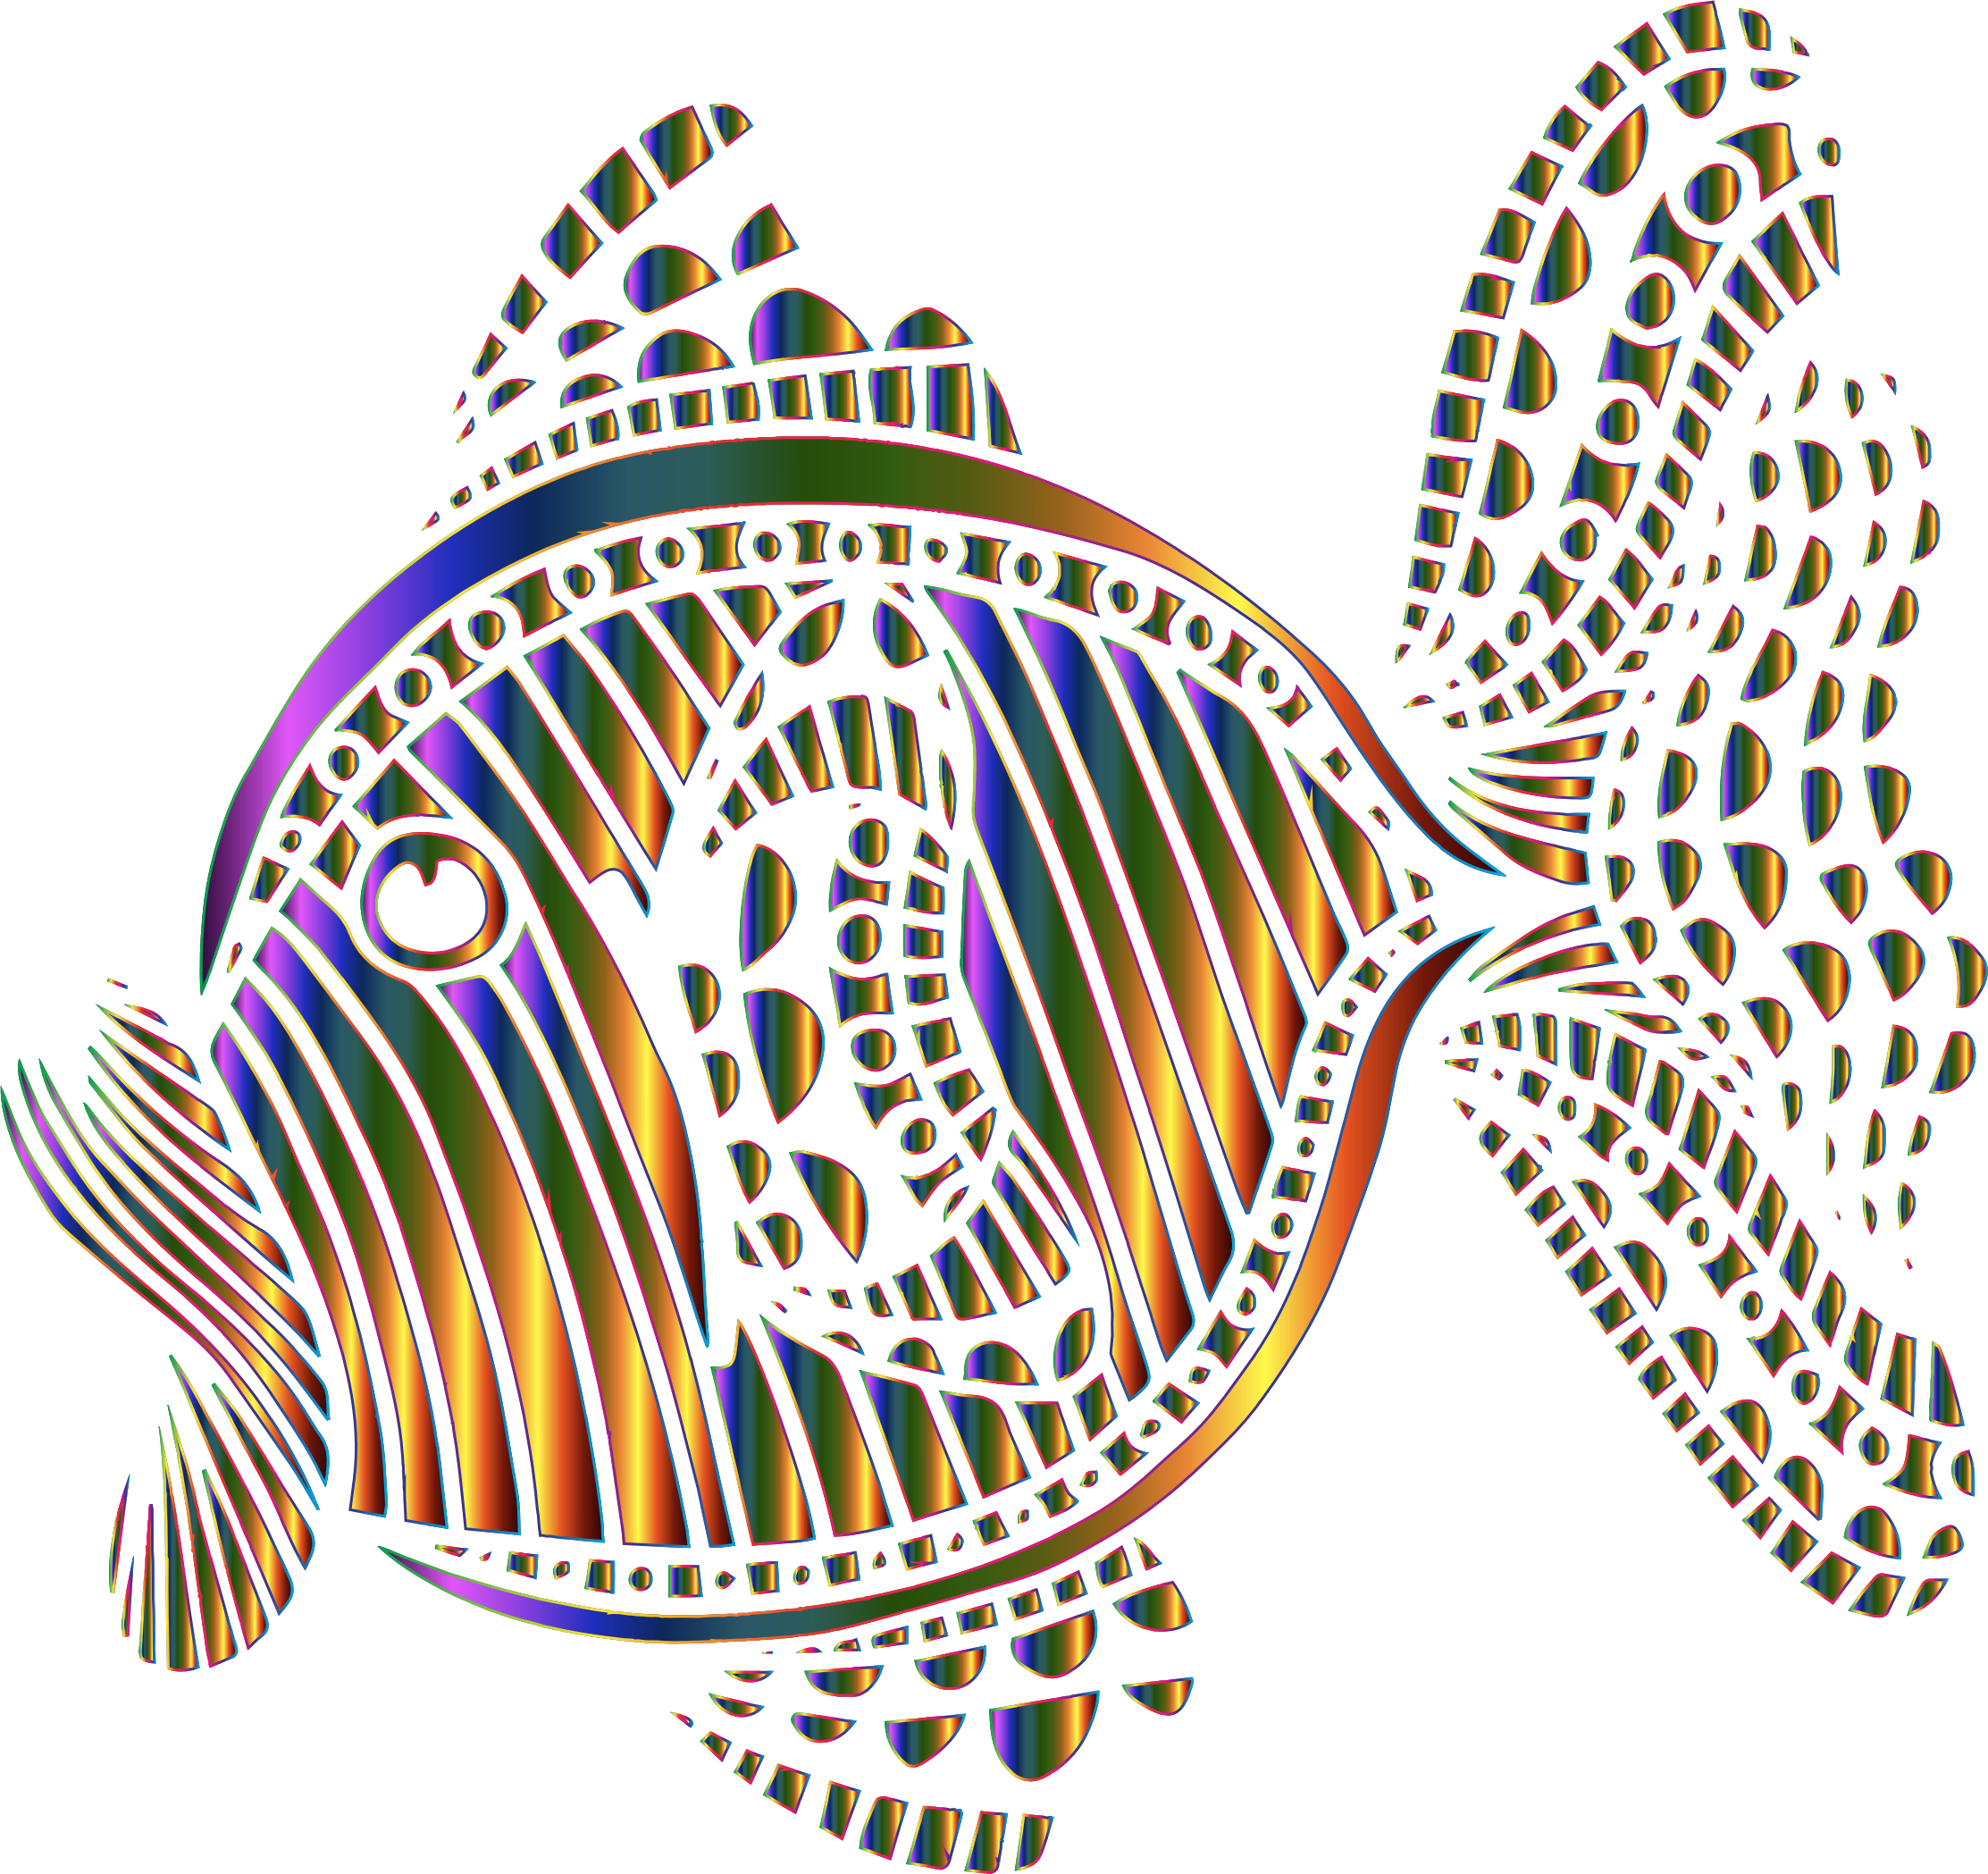 Fish clipart colorful. Abstract big image png